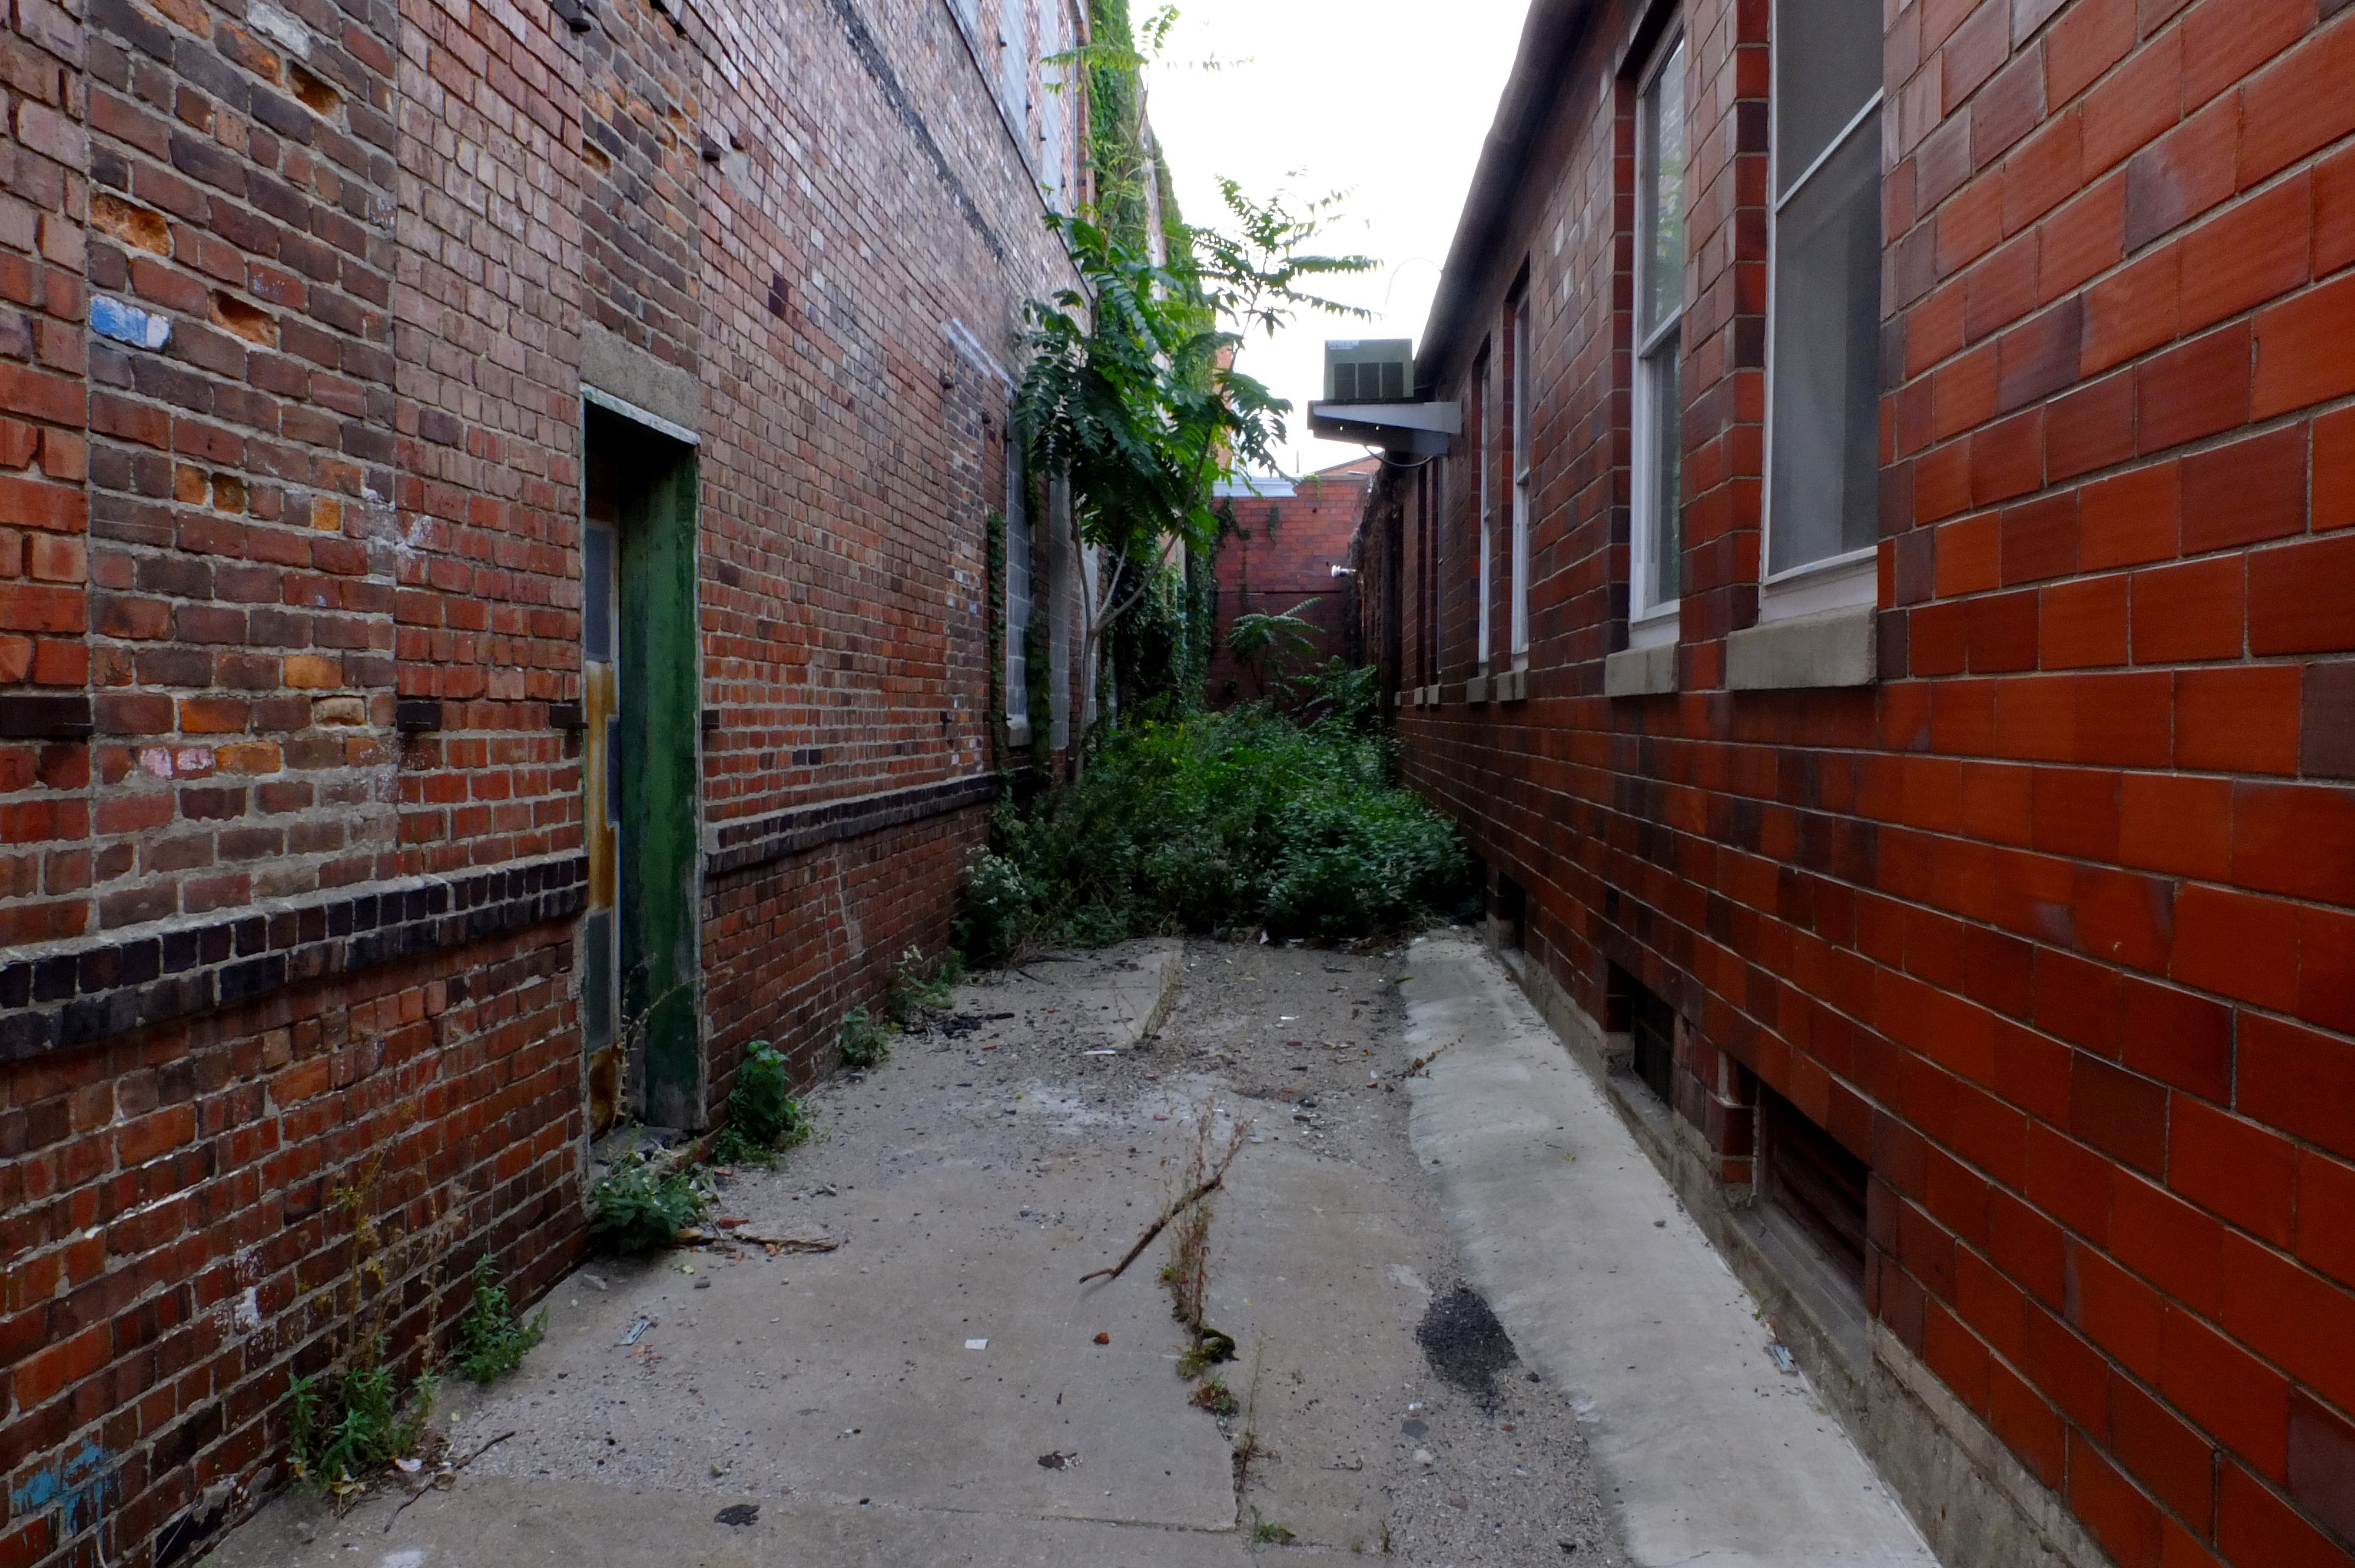 Alley clipart dead end #11